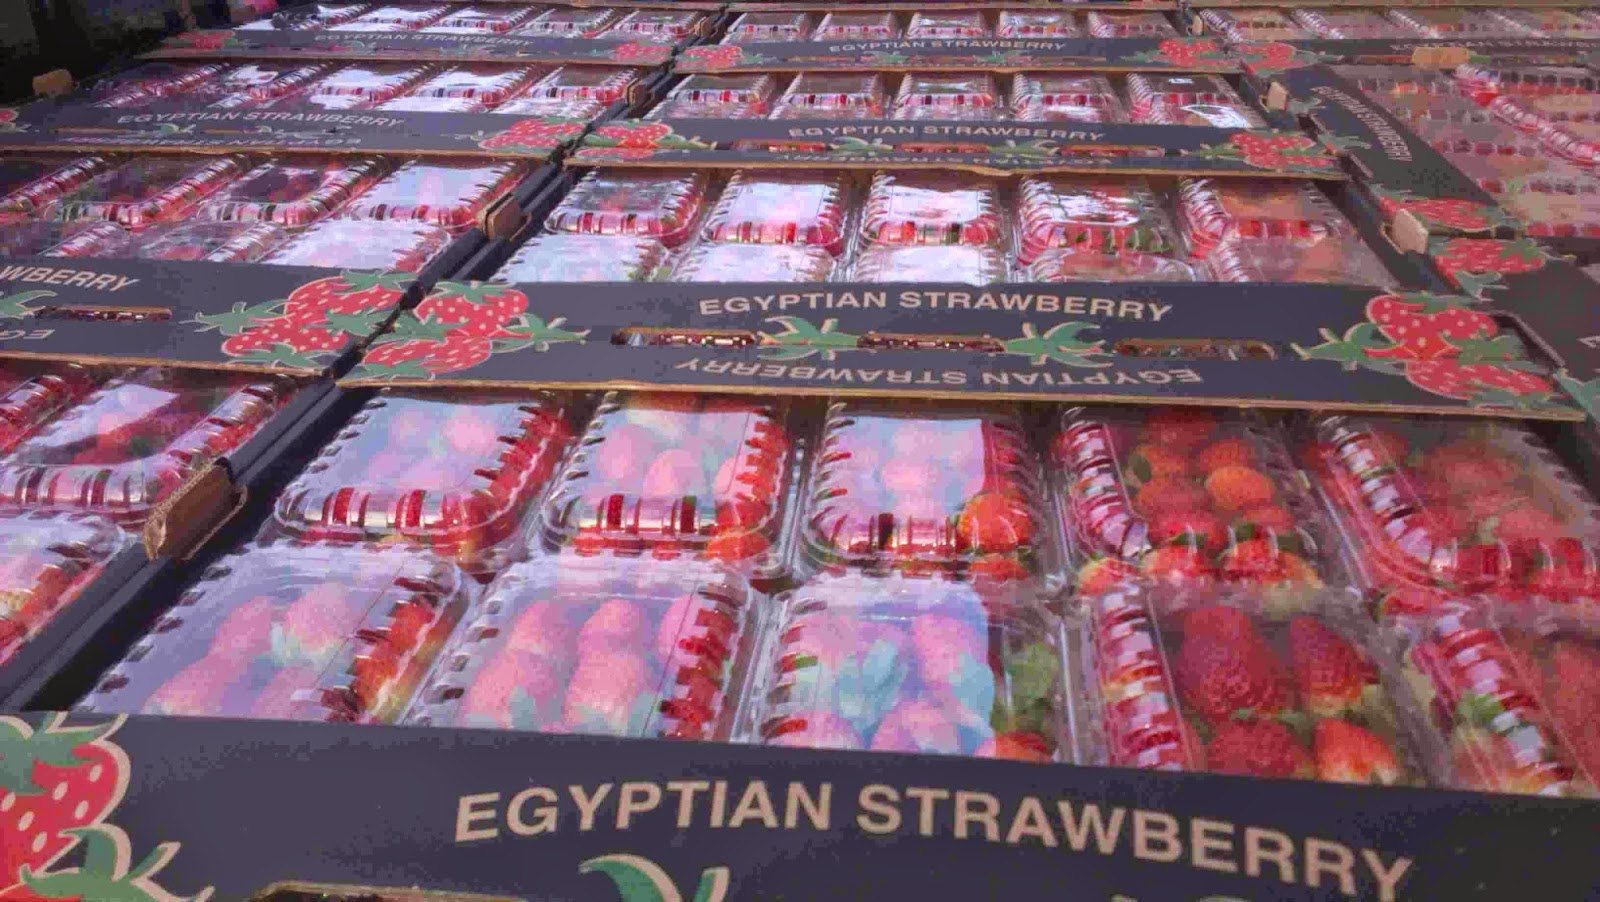 cheap strawberry prices